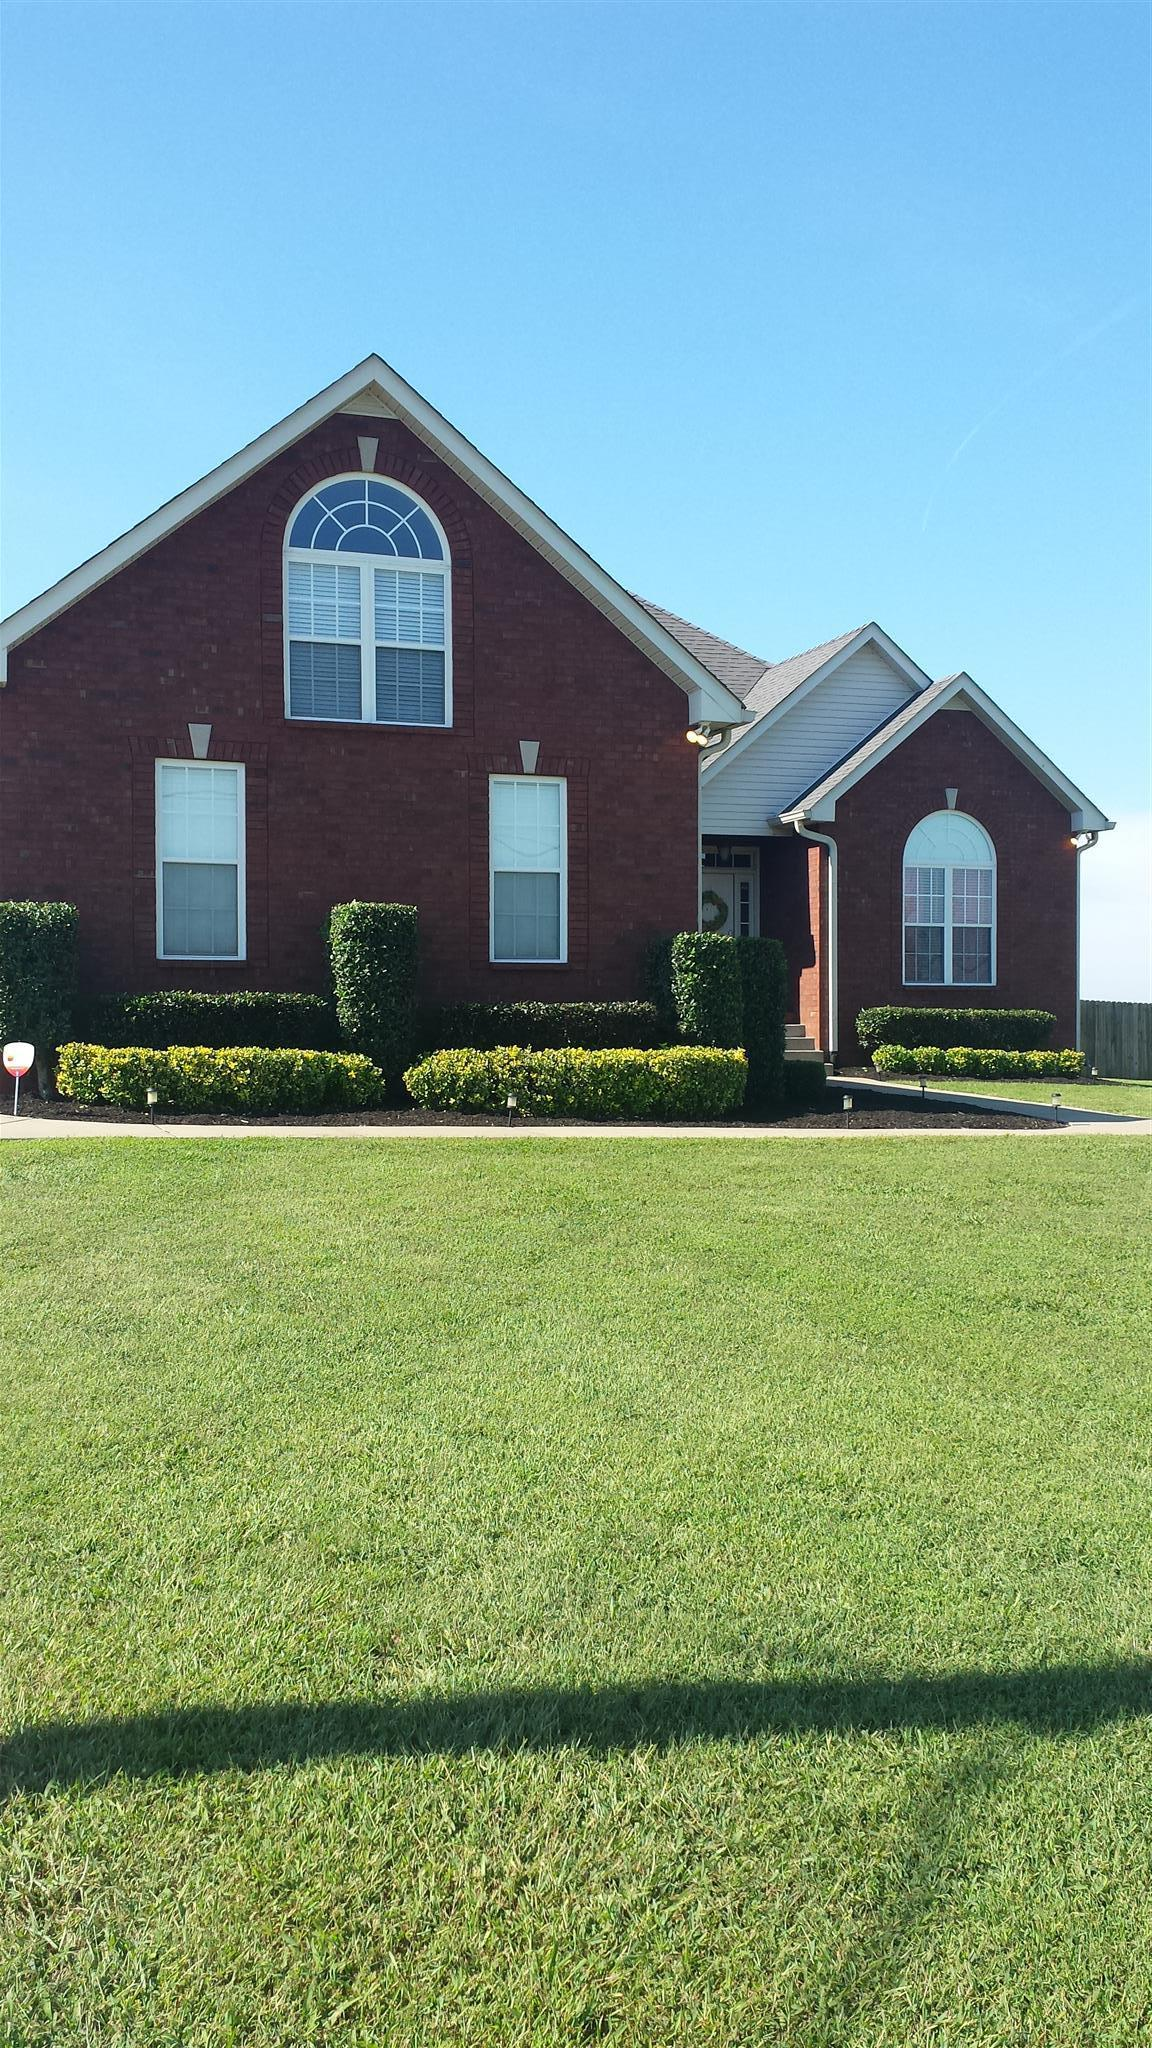 1058 Luton Way, White House, TN 37188